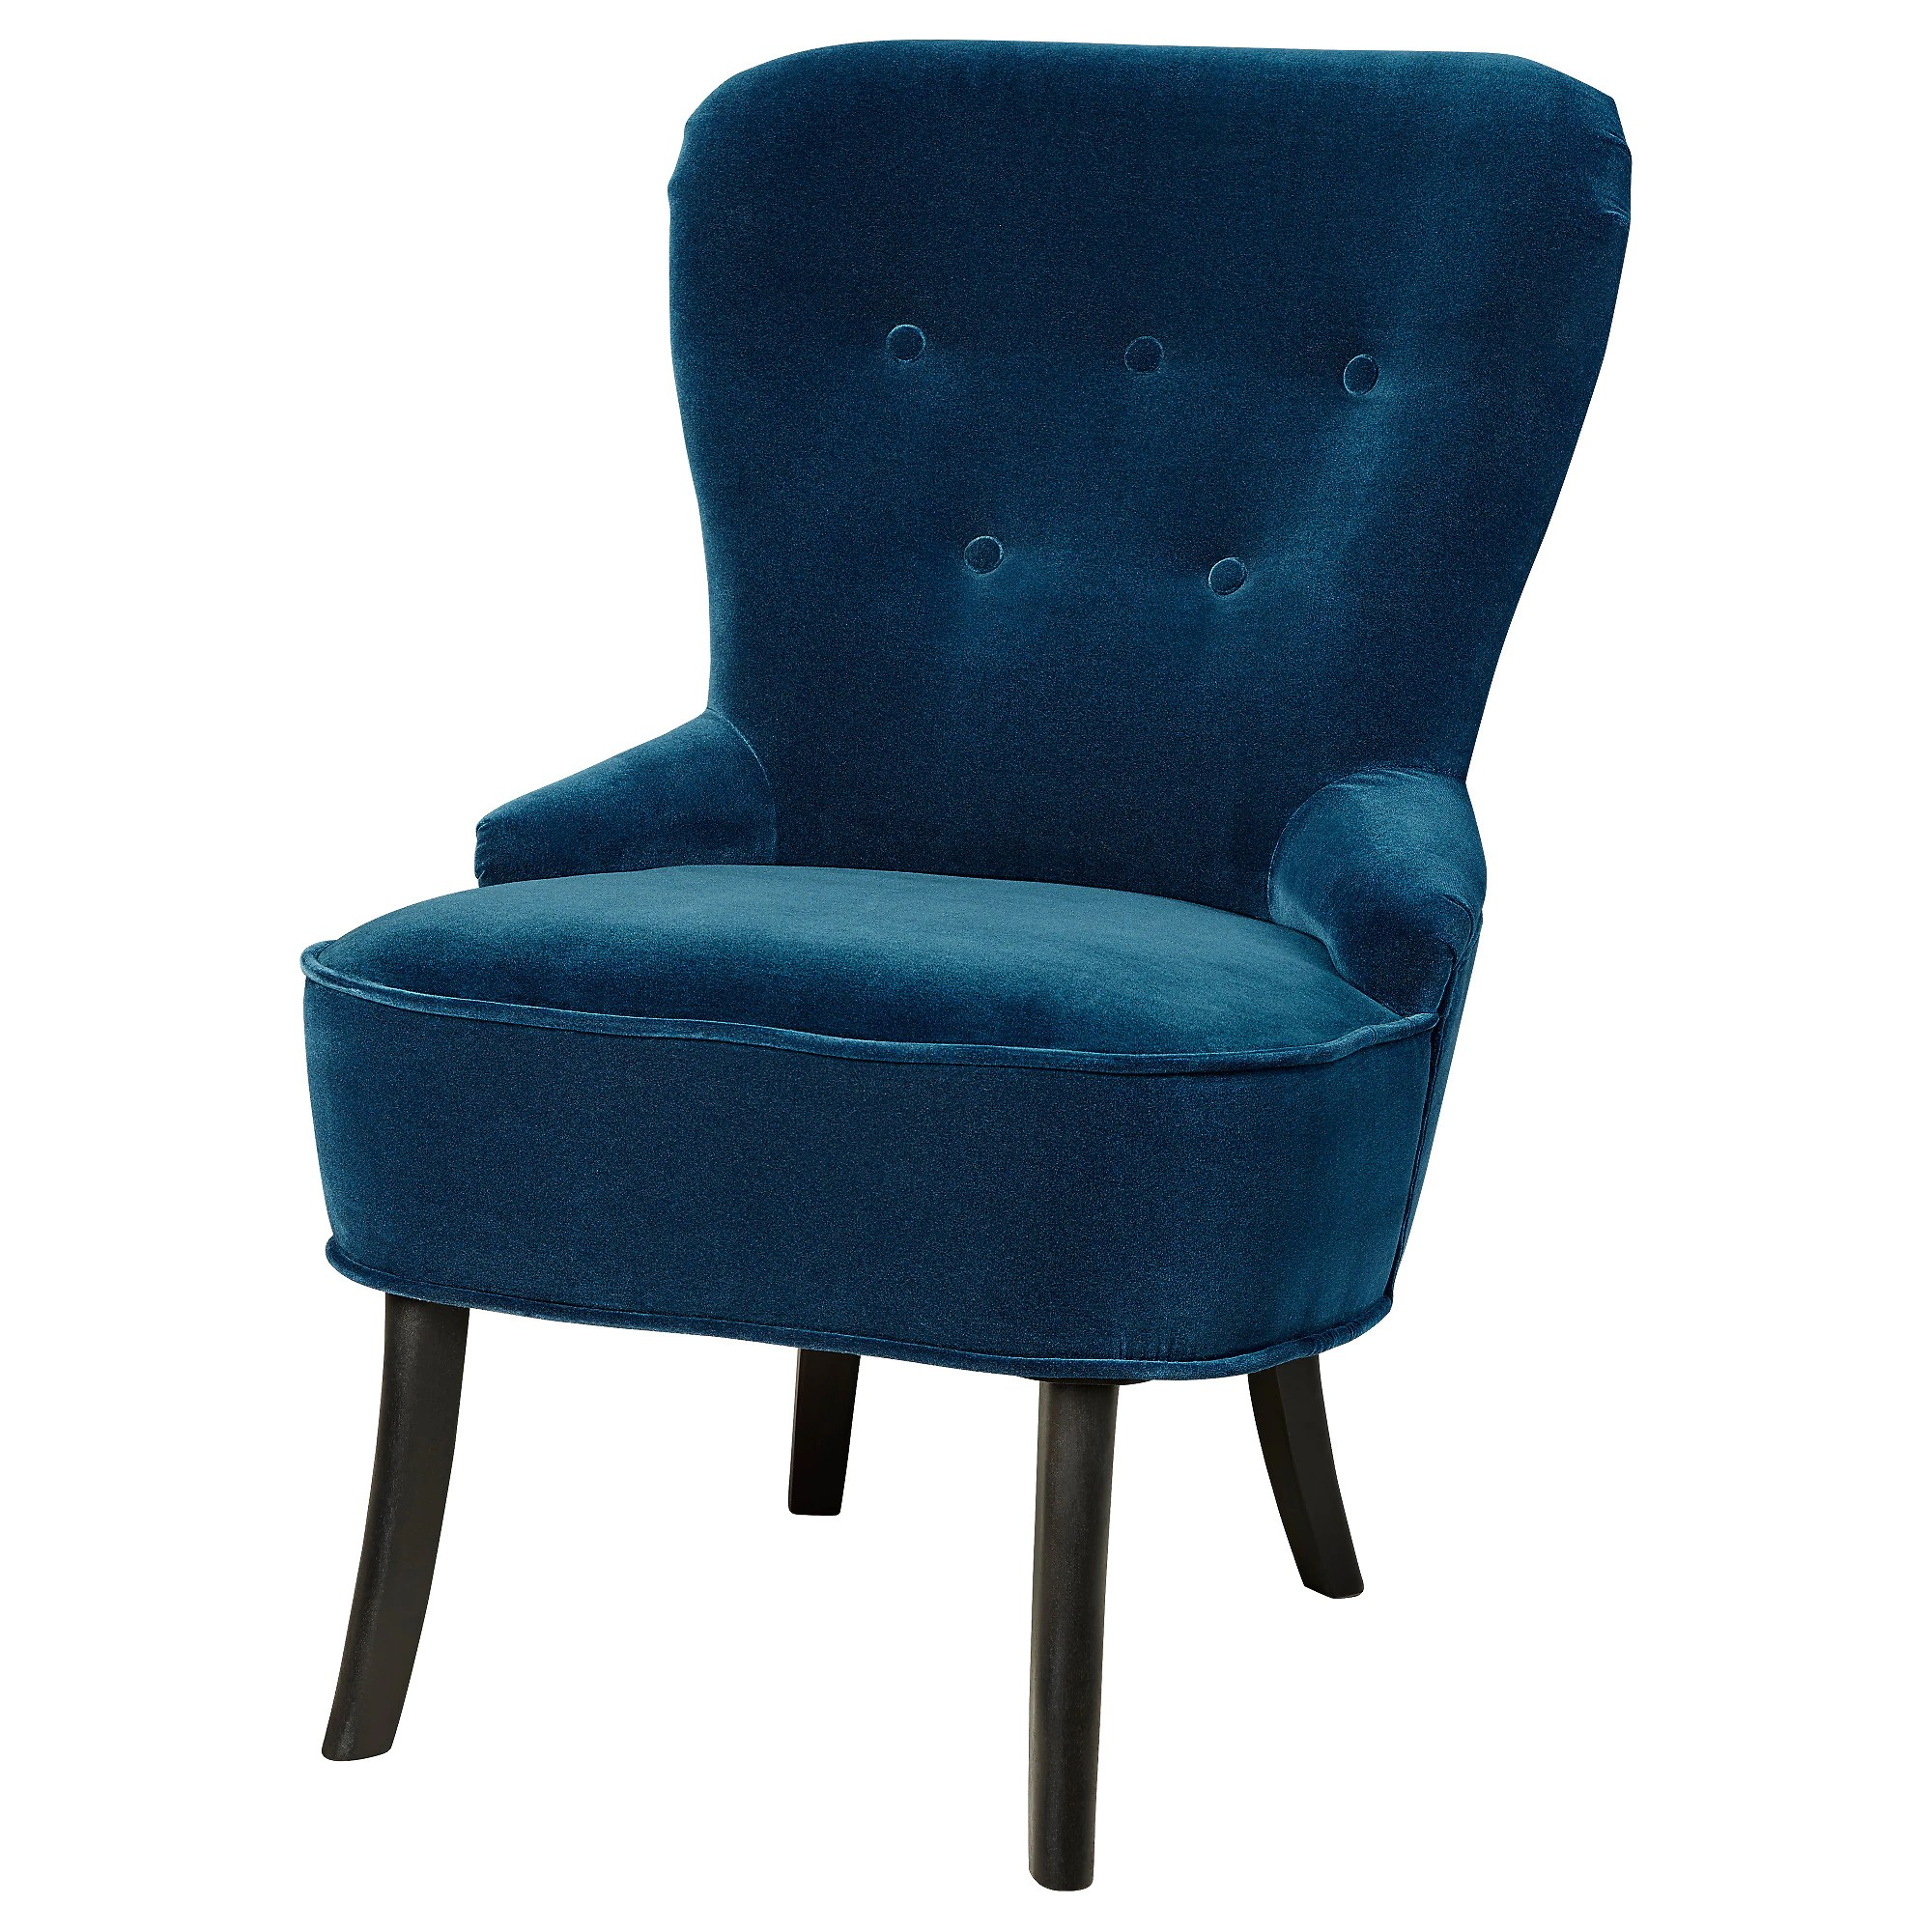 Fauteuil Tv Ikea Remsta Fauteuil Djuparp Groenblauw Donker Groenblauw